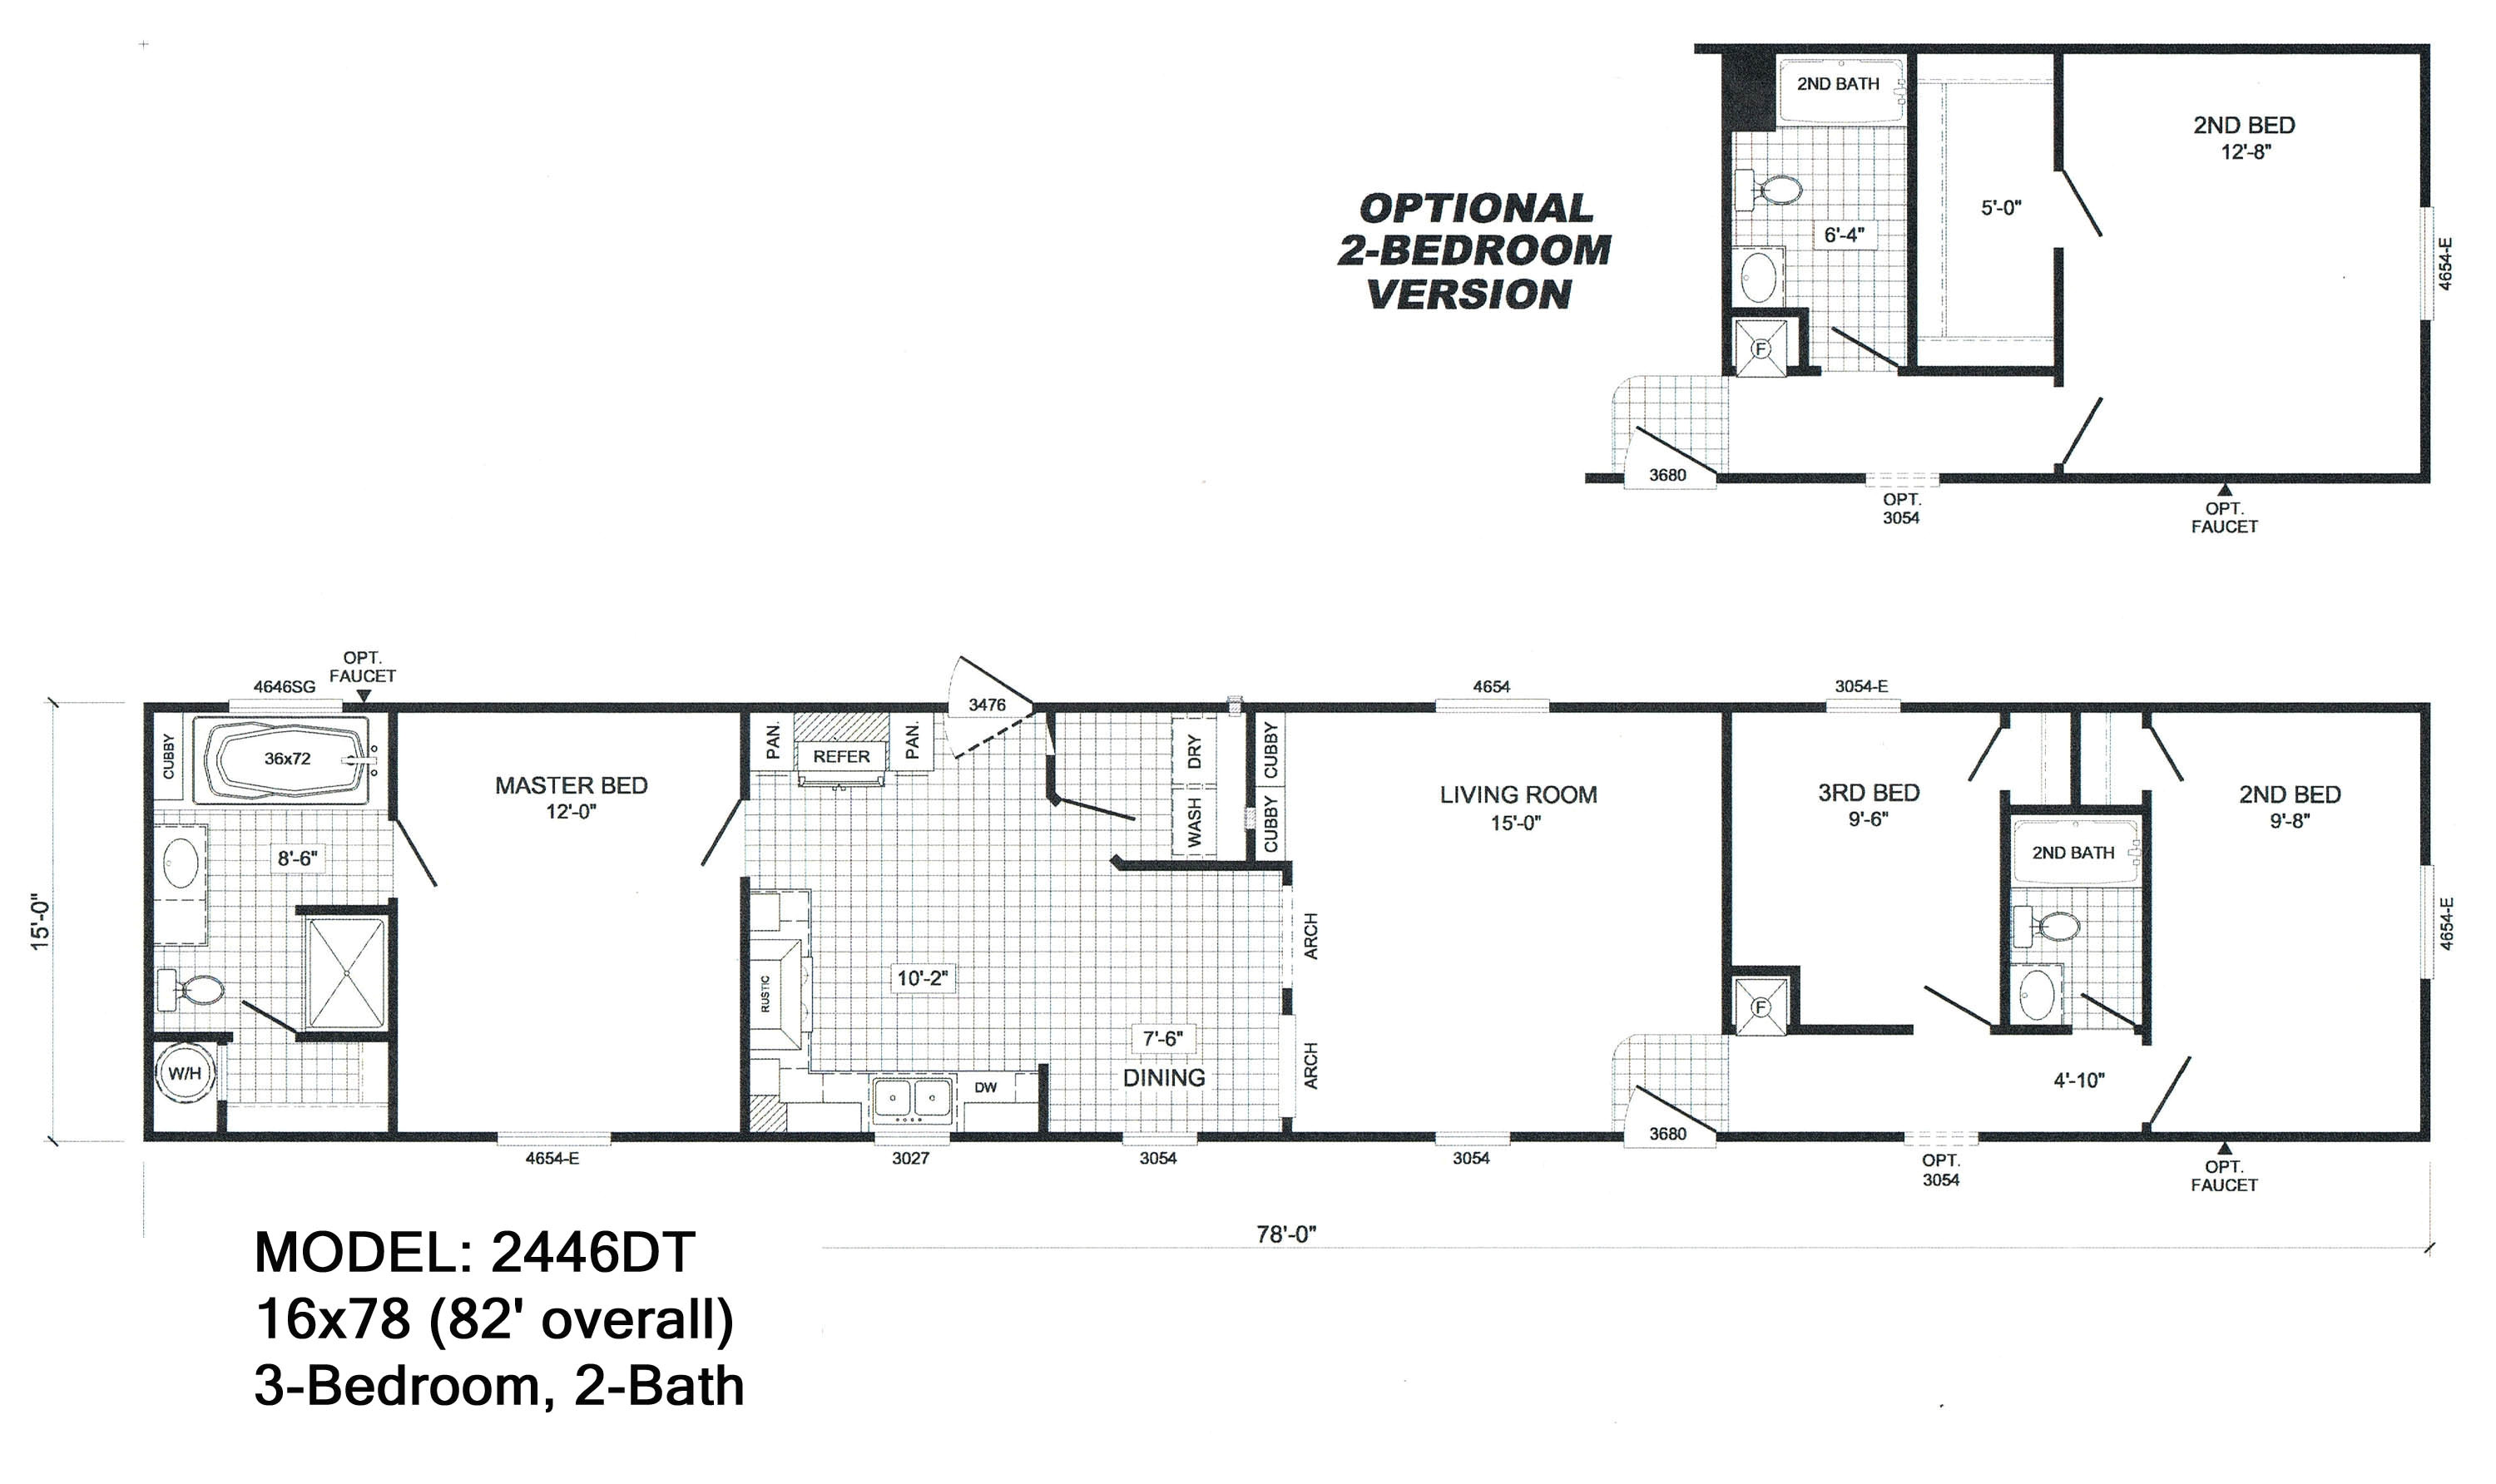 9093 3 bedroom 2 bath single wide mobile home floor plans